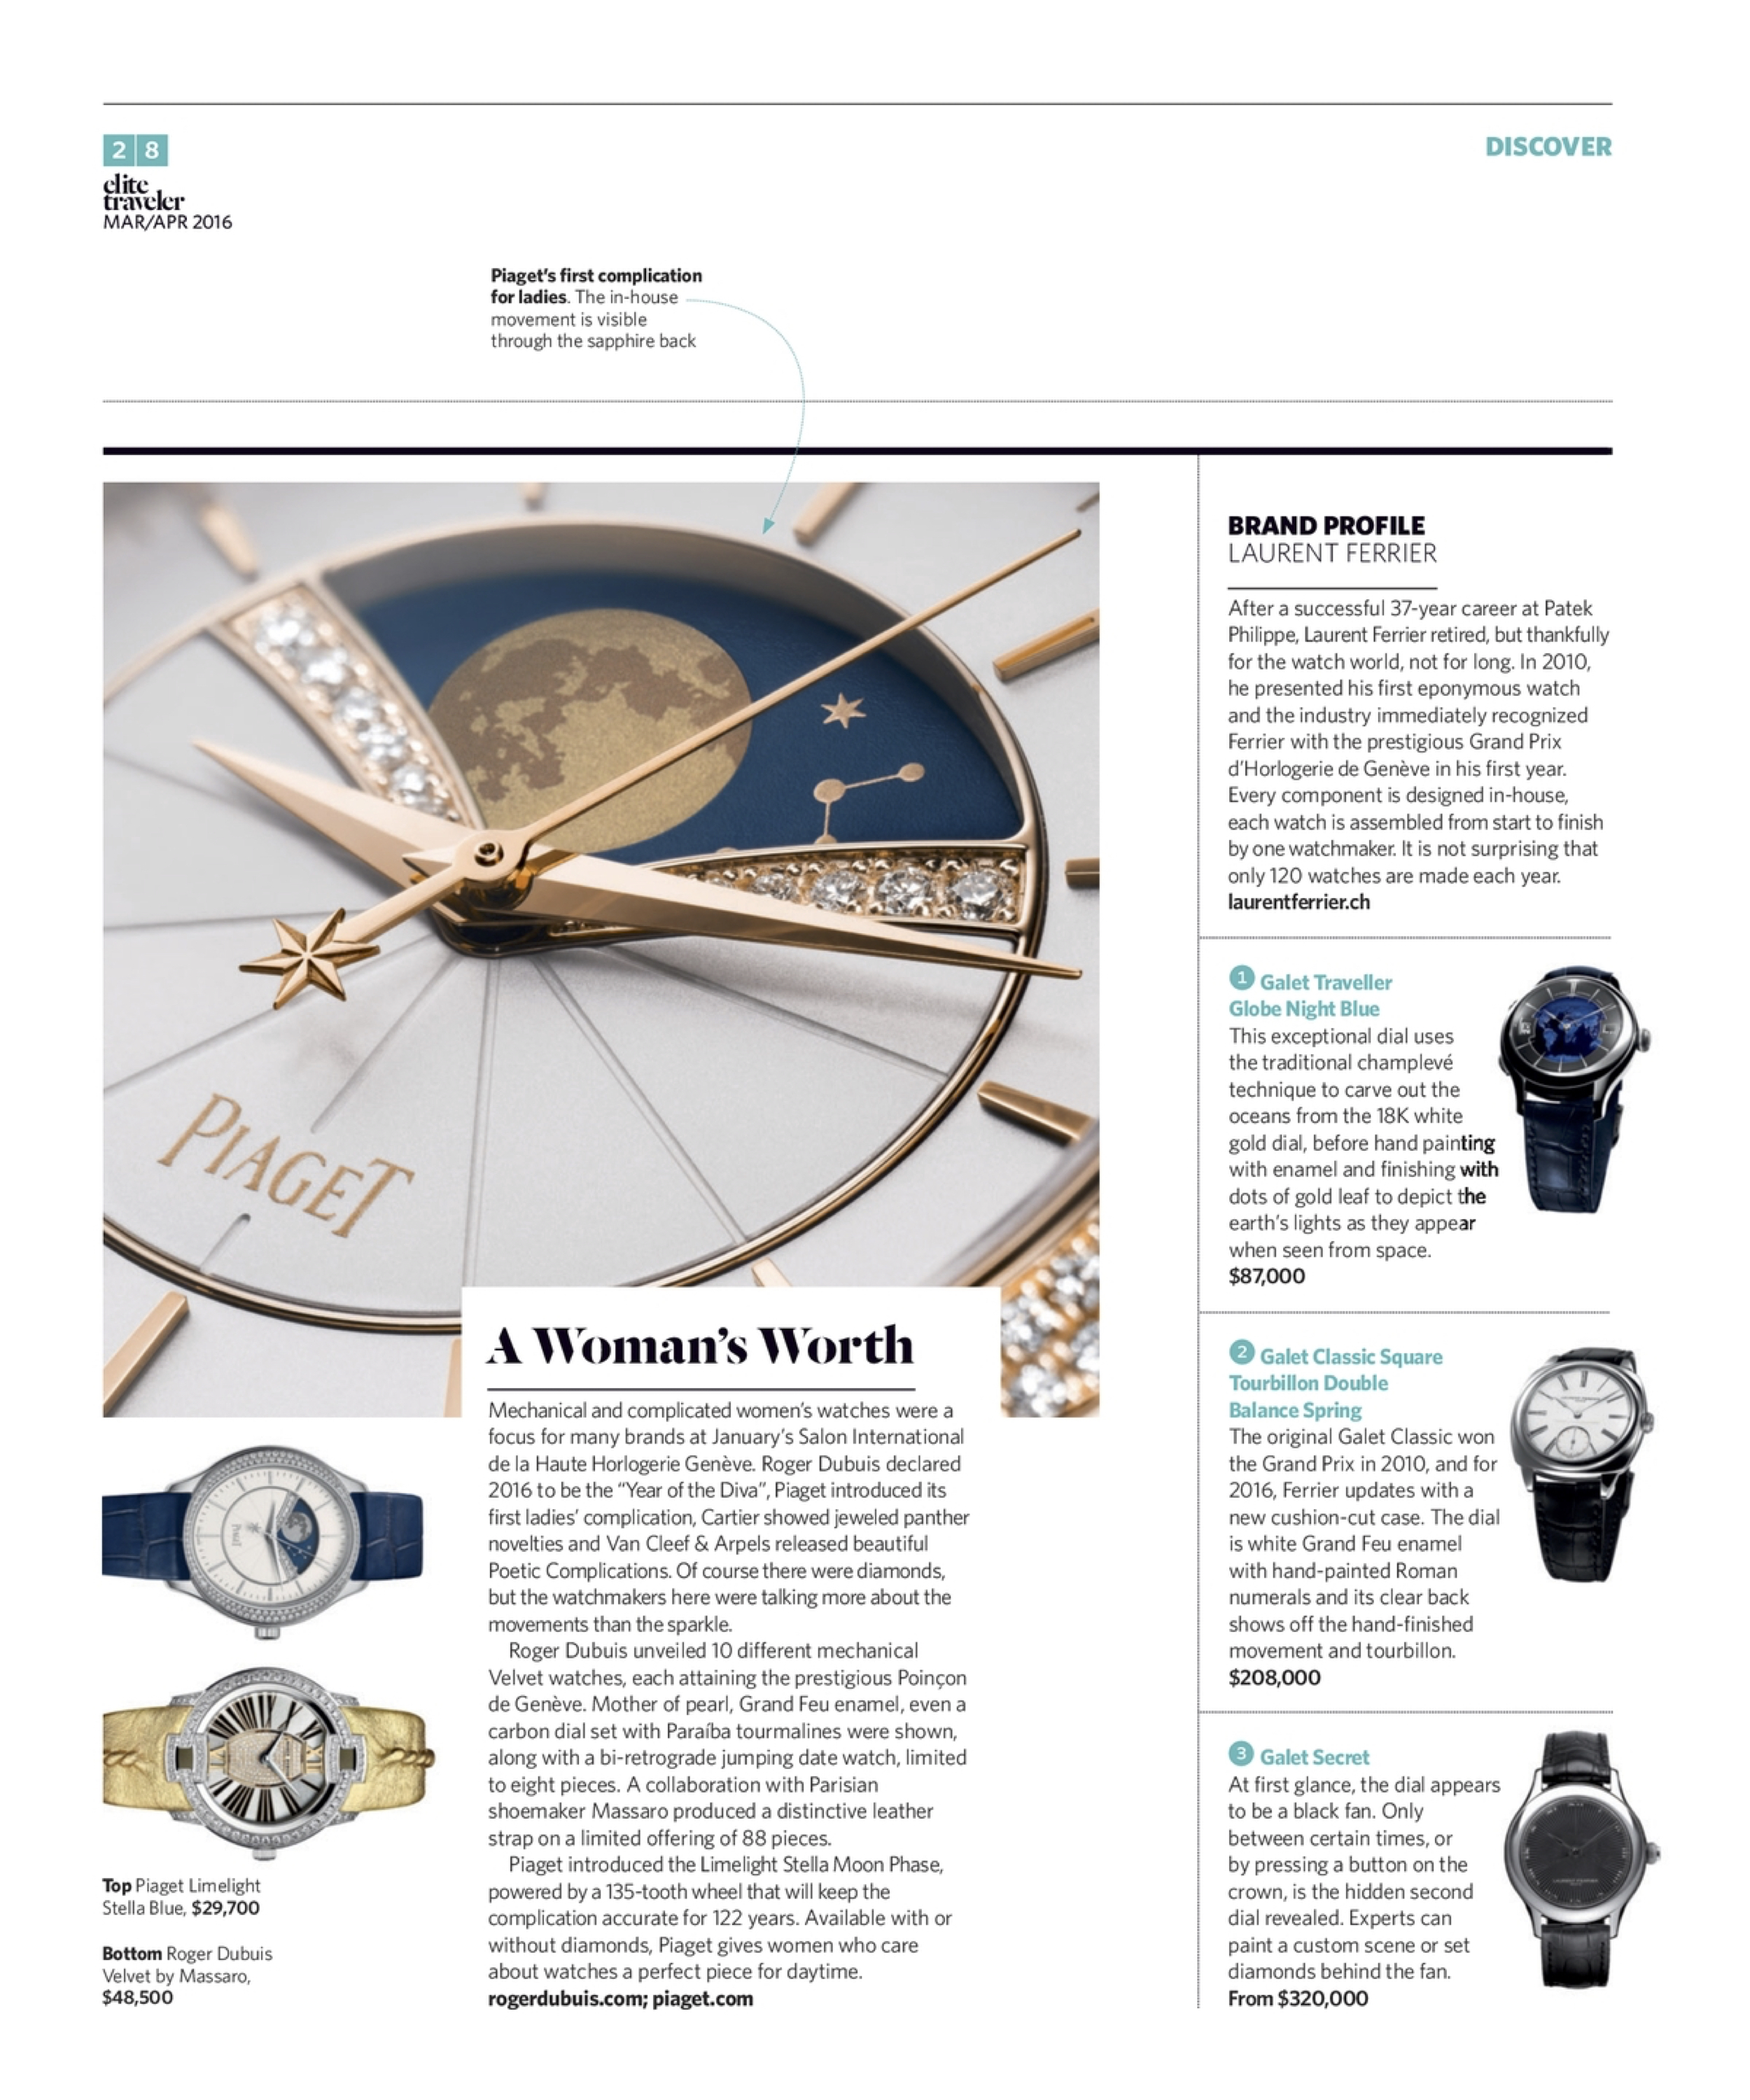 March/April 2016 | Roger Dubuis, Piaget, Laurent Ferrier Profile